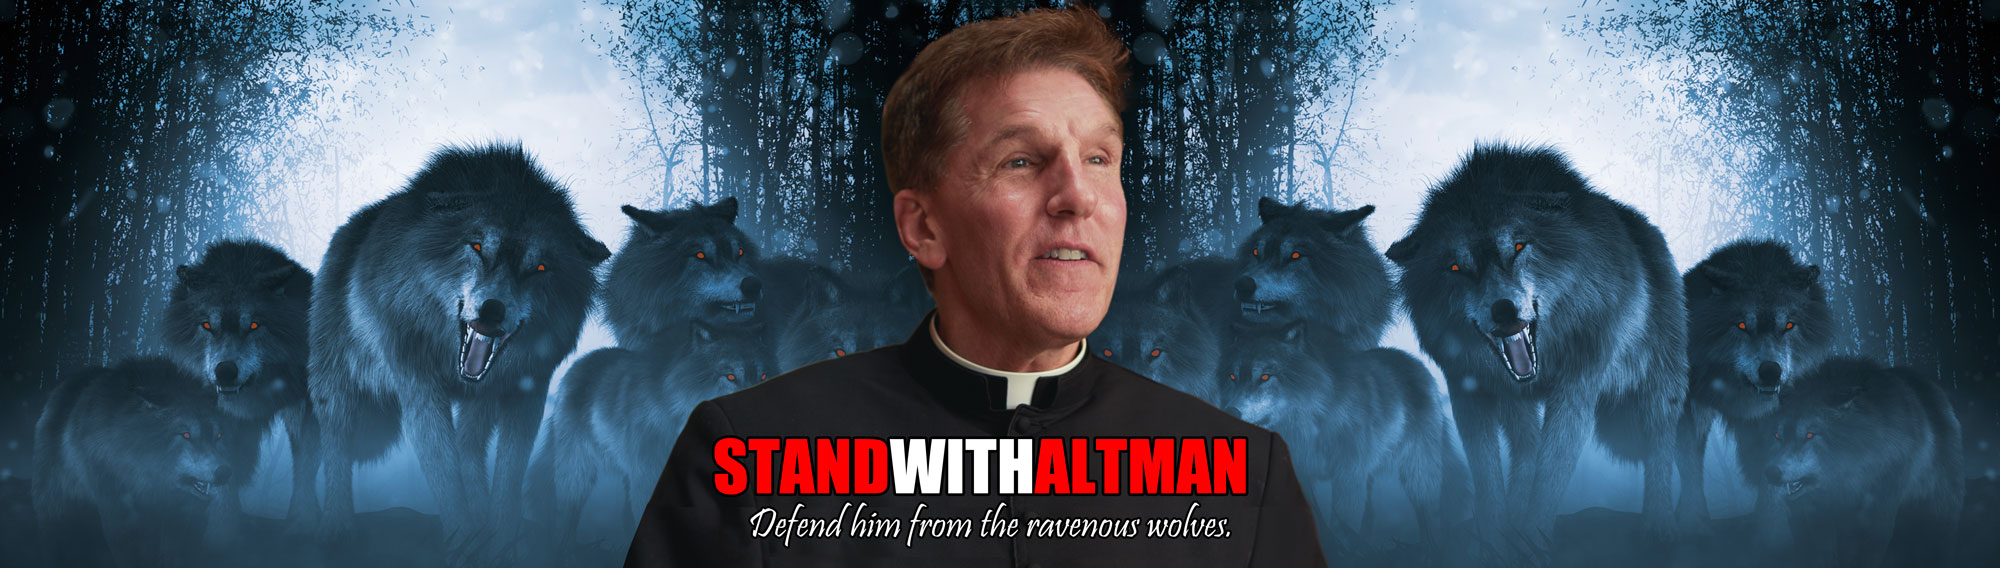 Stand With Altman